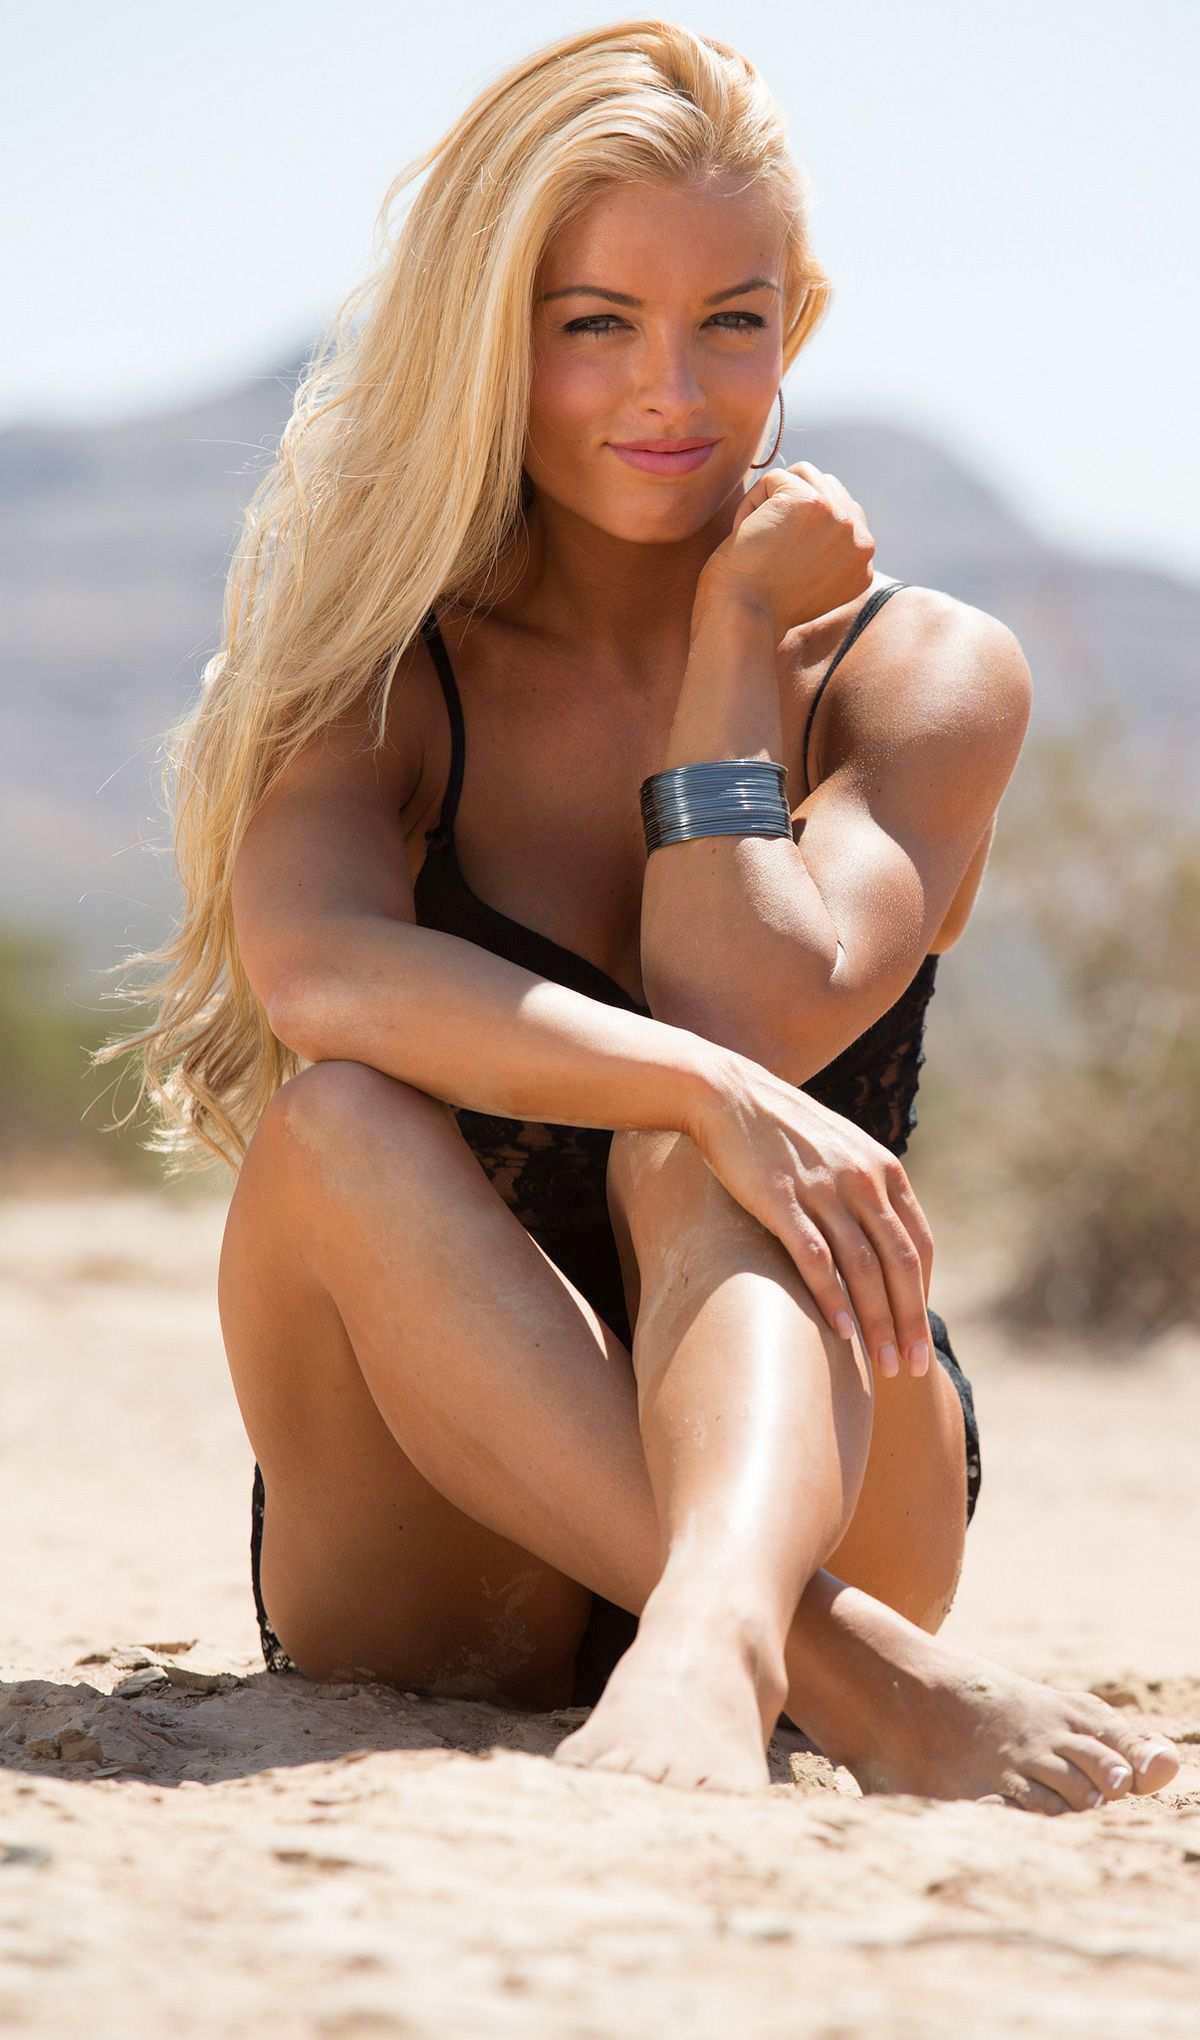 Mandy sweet and athletic women | Erotic photo)